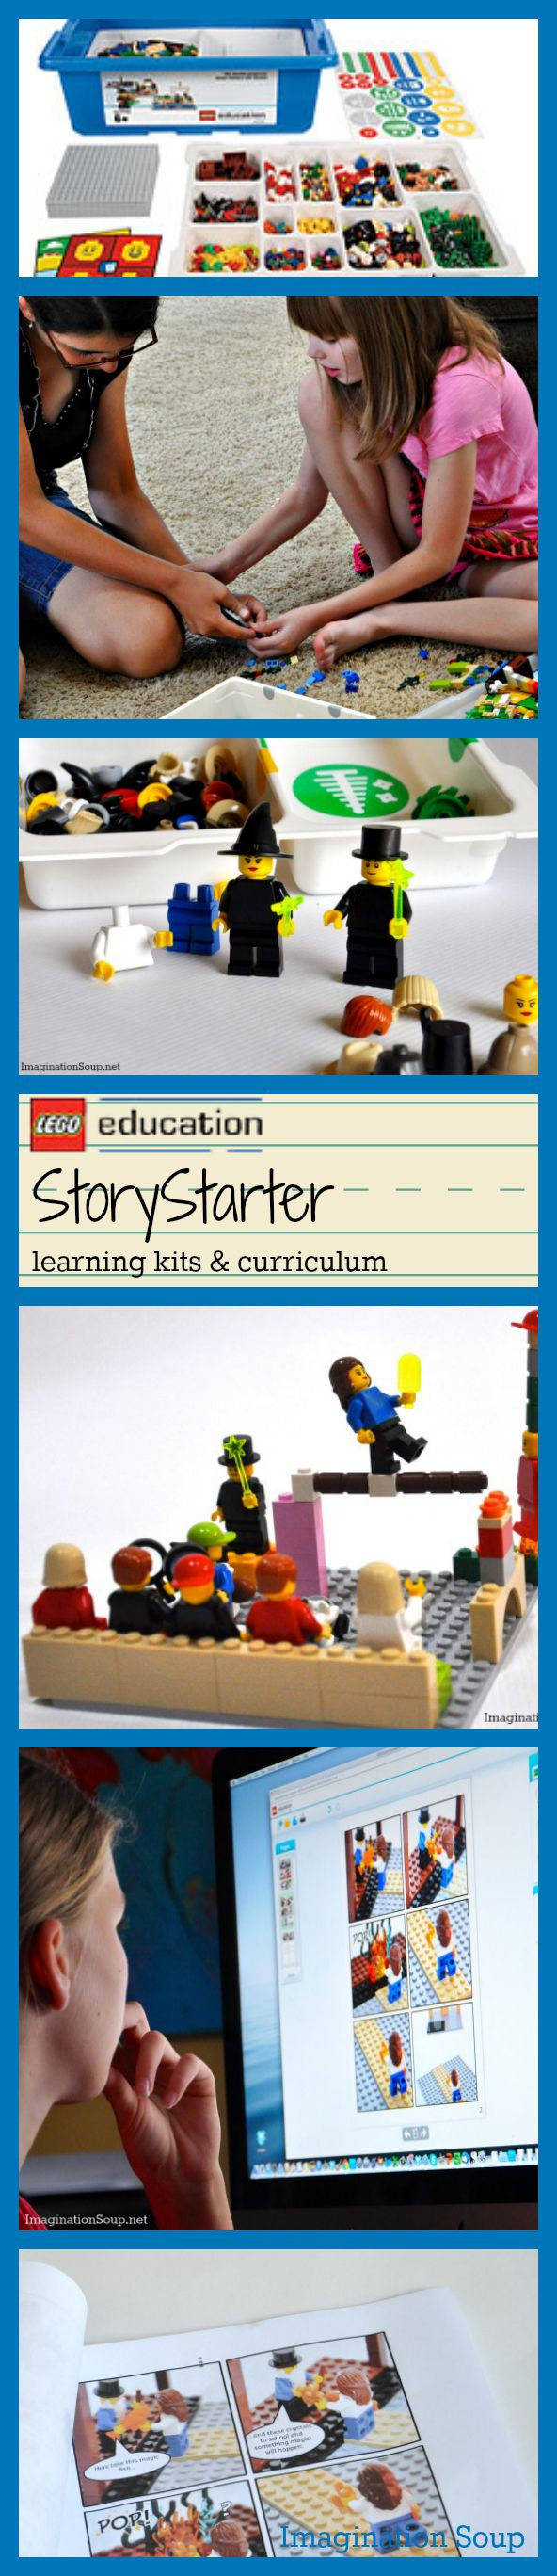 New LEGO kit gets kids imagining, working together, learning, and . . . WRITING!! :) http://imaginationsoup.net/2013/08/new-lego-kit-get-kids-writing/